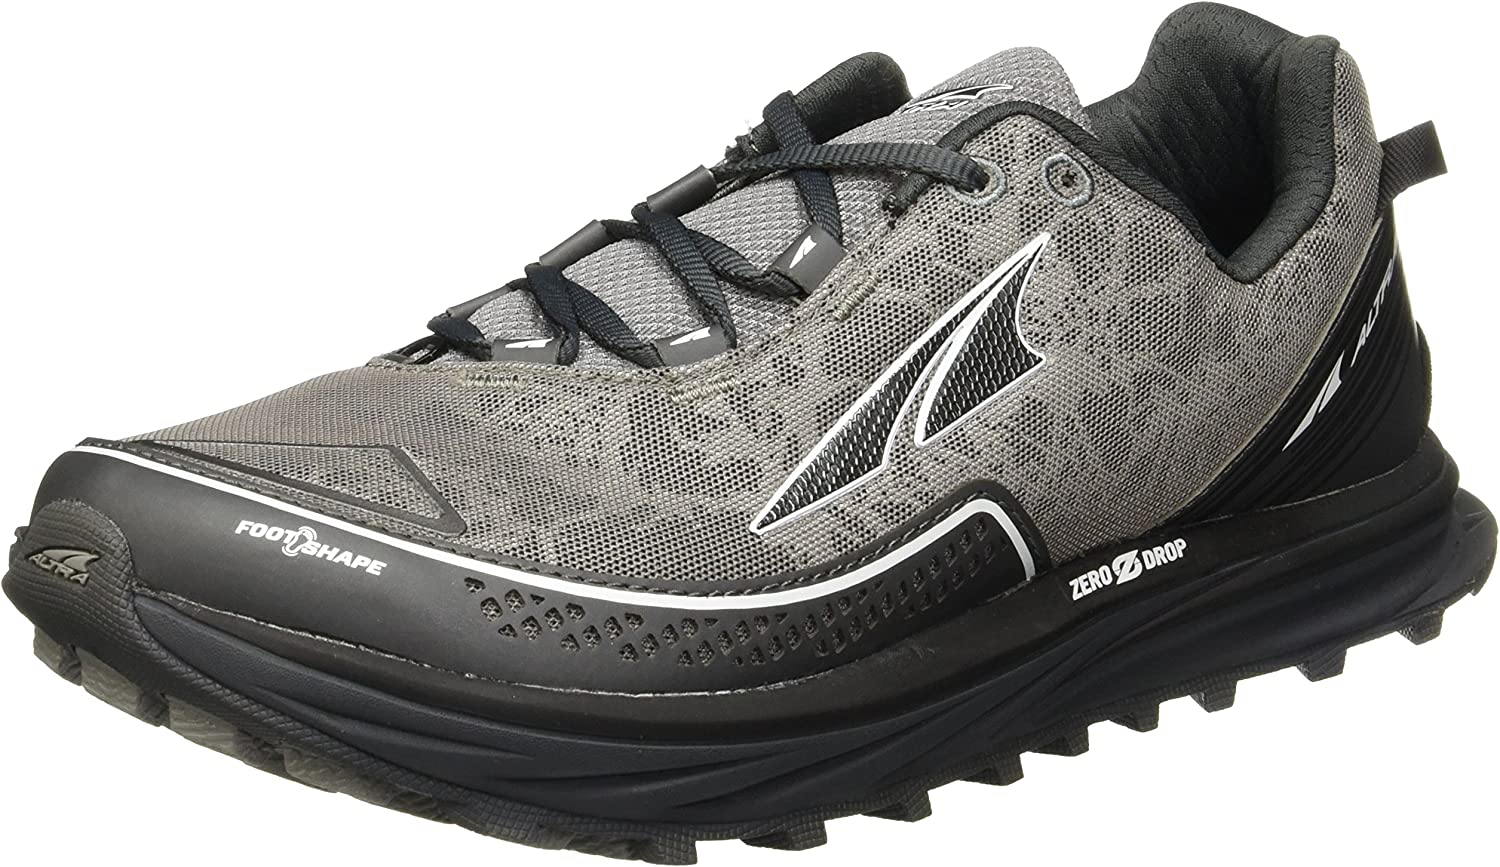 ALTRA(アルトラ) TIMP TRAIL Men US9.5(27.5cm) グレー